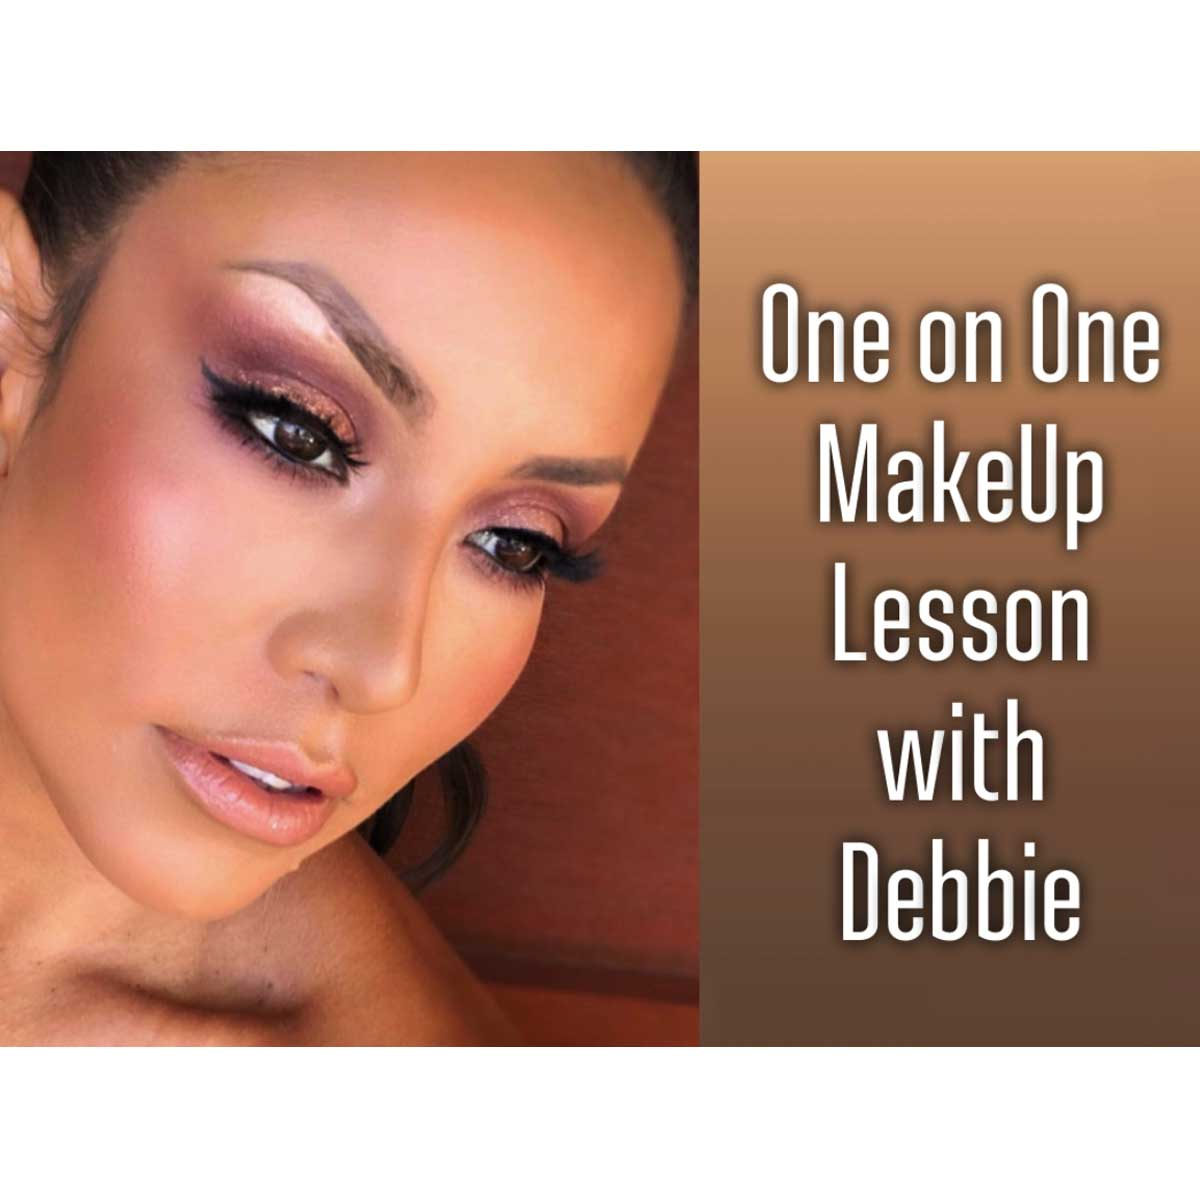 One On One Make Up Lesson With Debbie Delgado – ONE HOUR